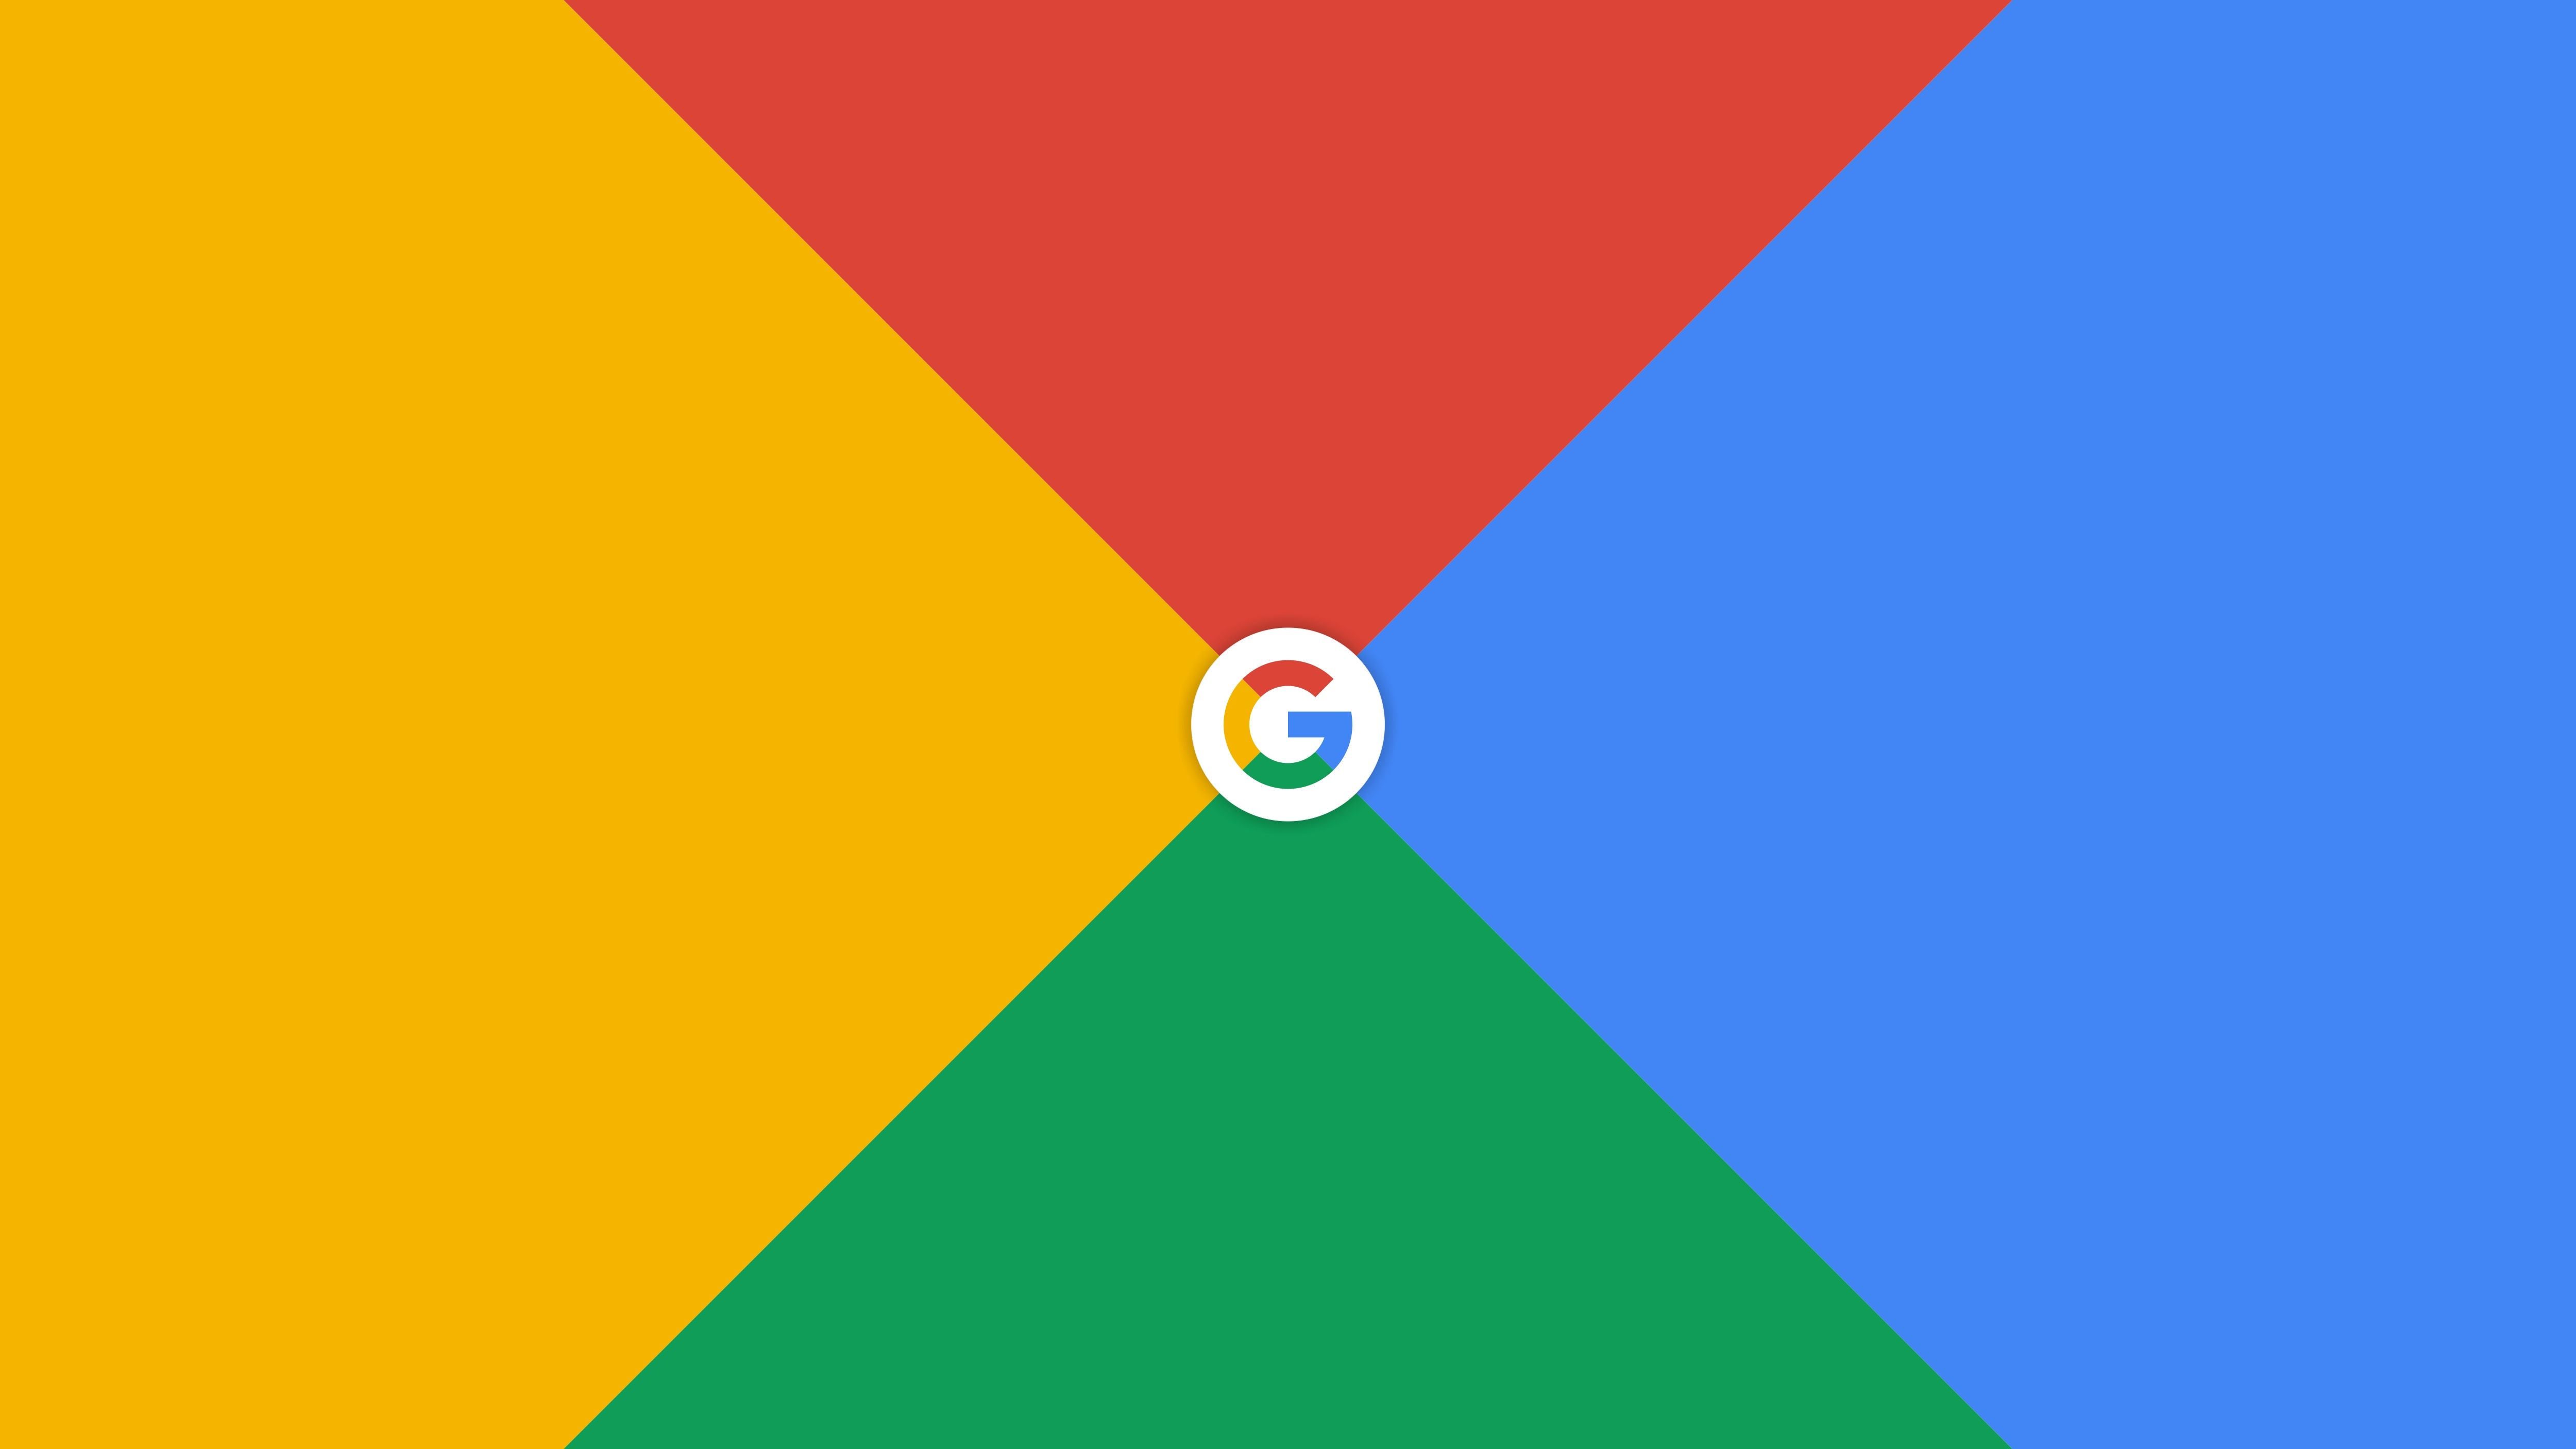 Wallpapers For Google Background